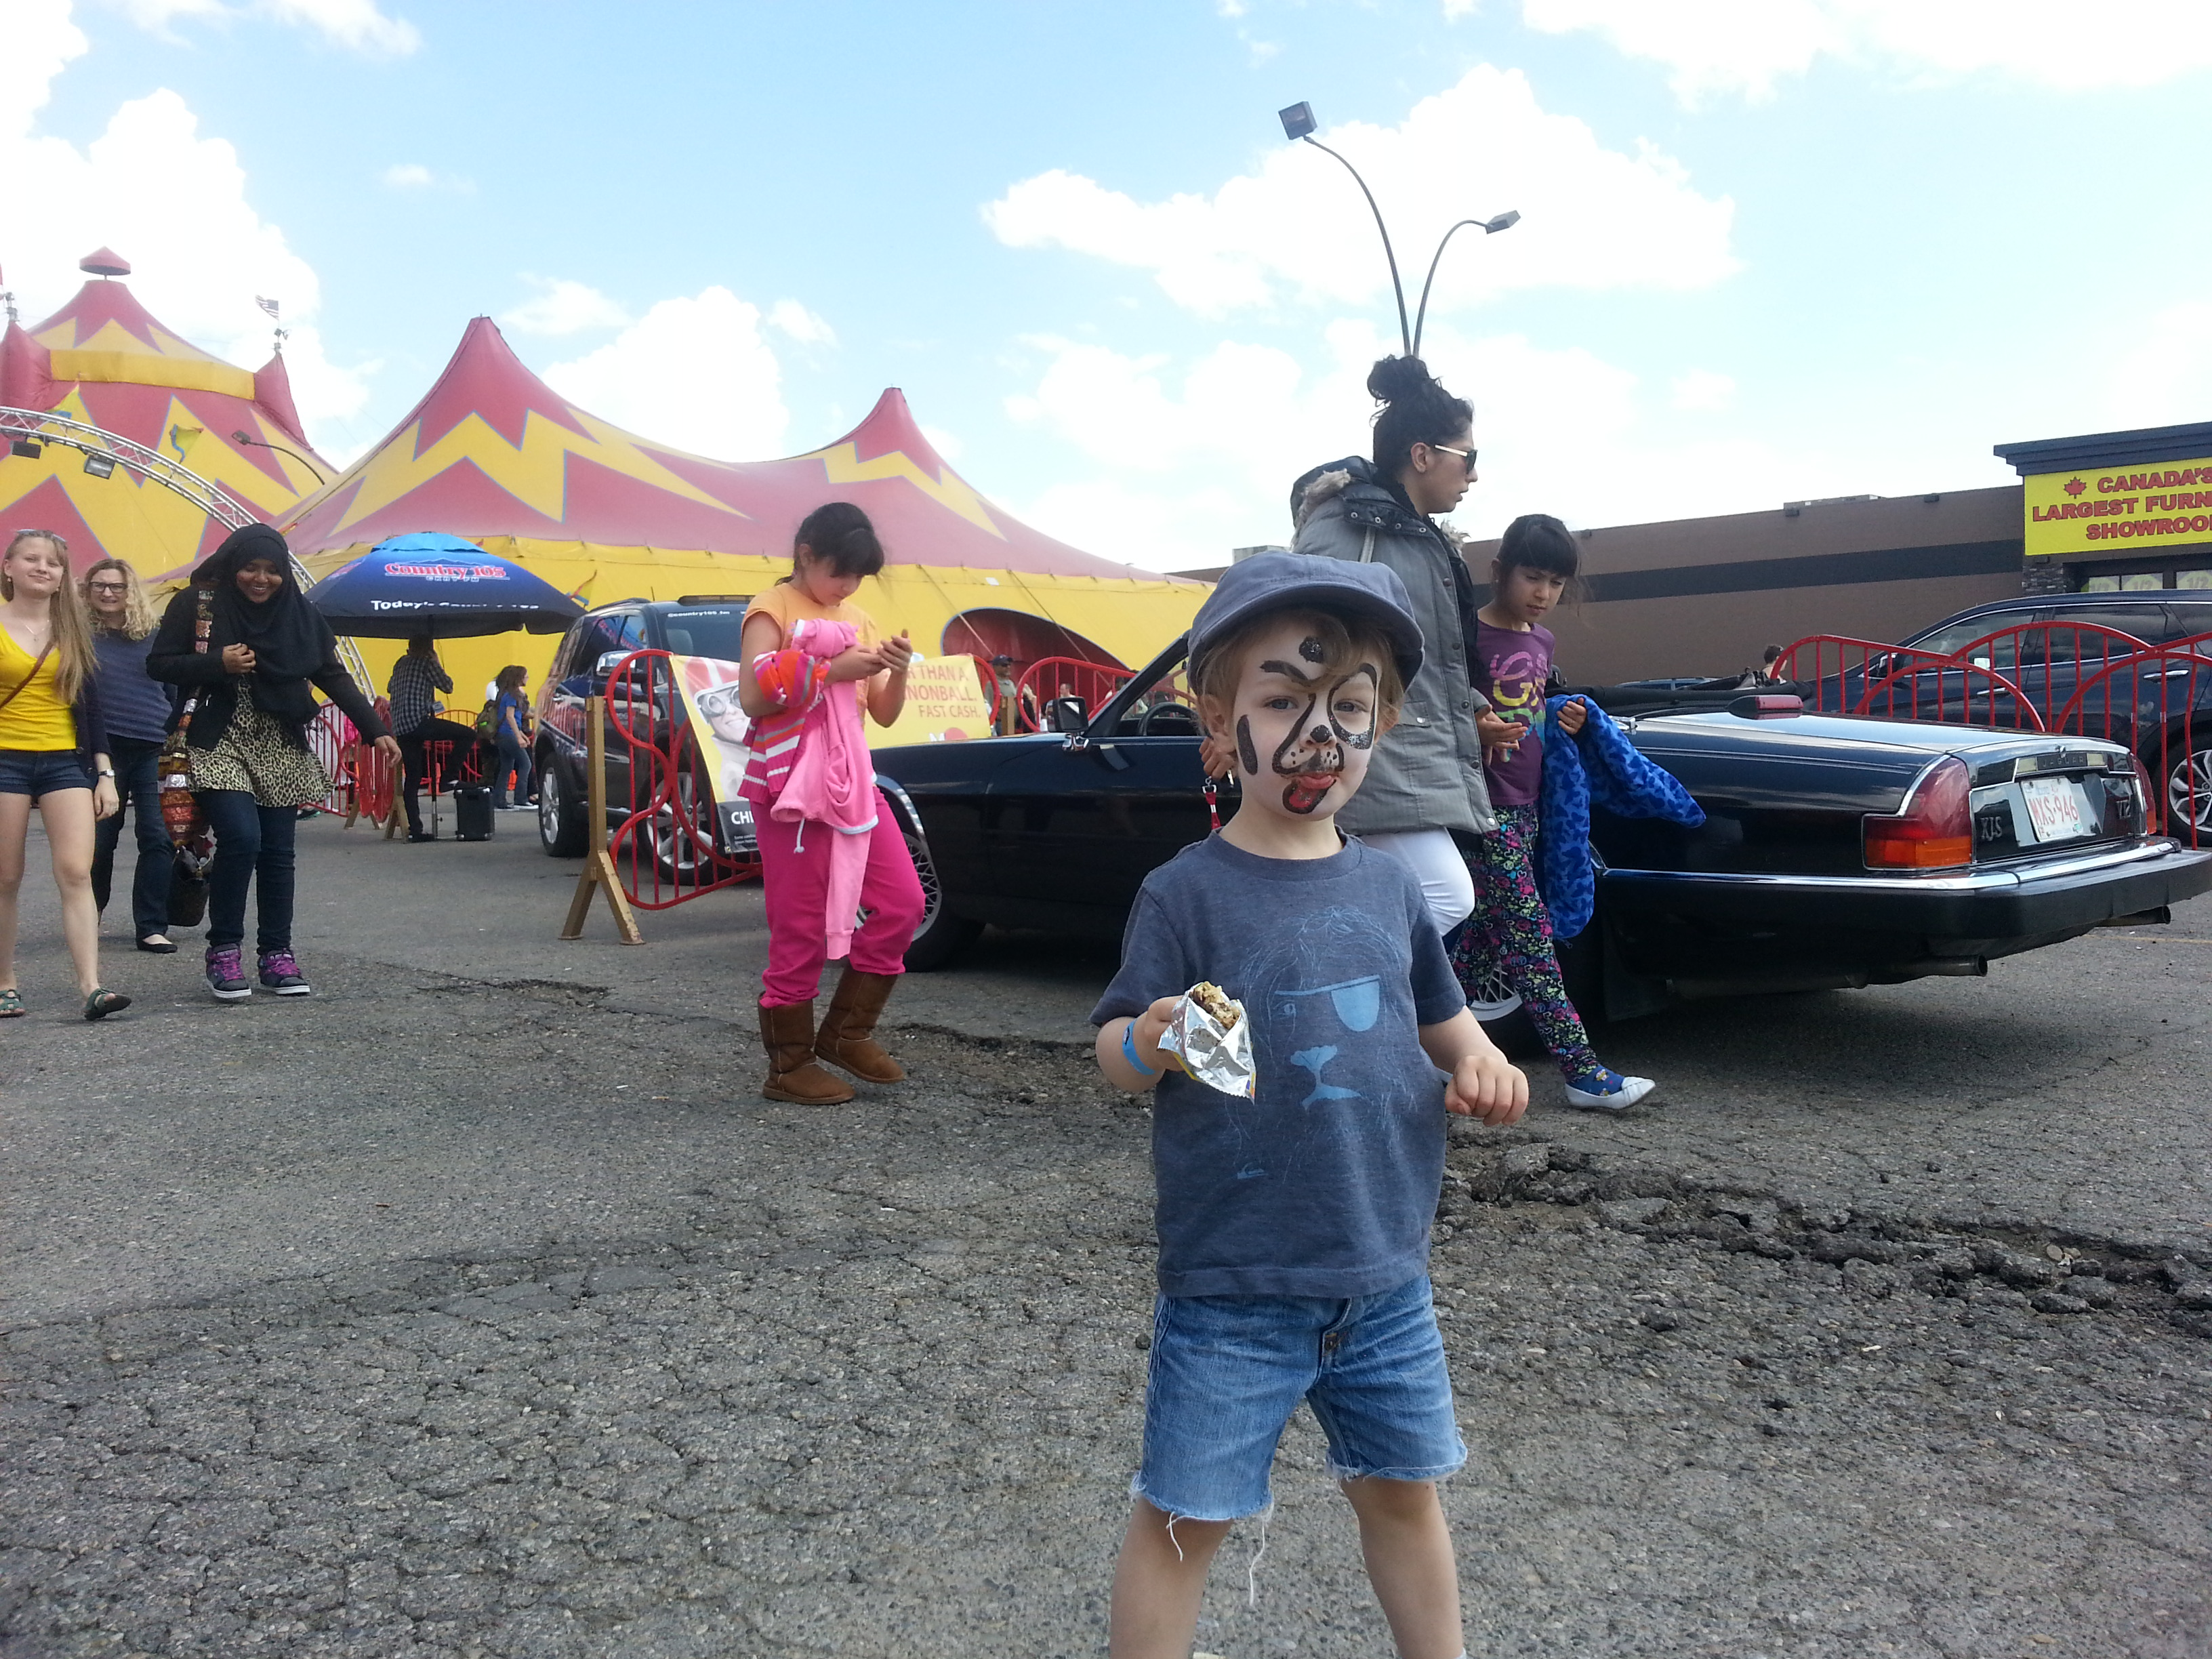 The Royal Canadian Circus was a great family experience!